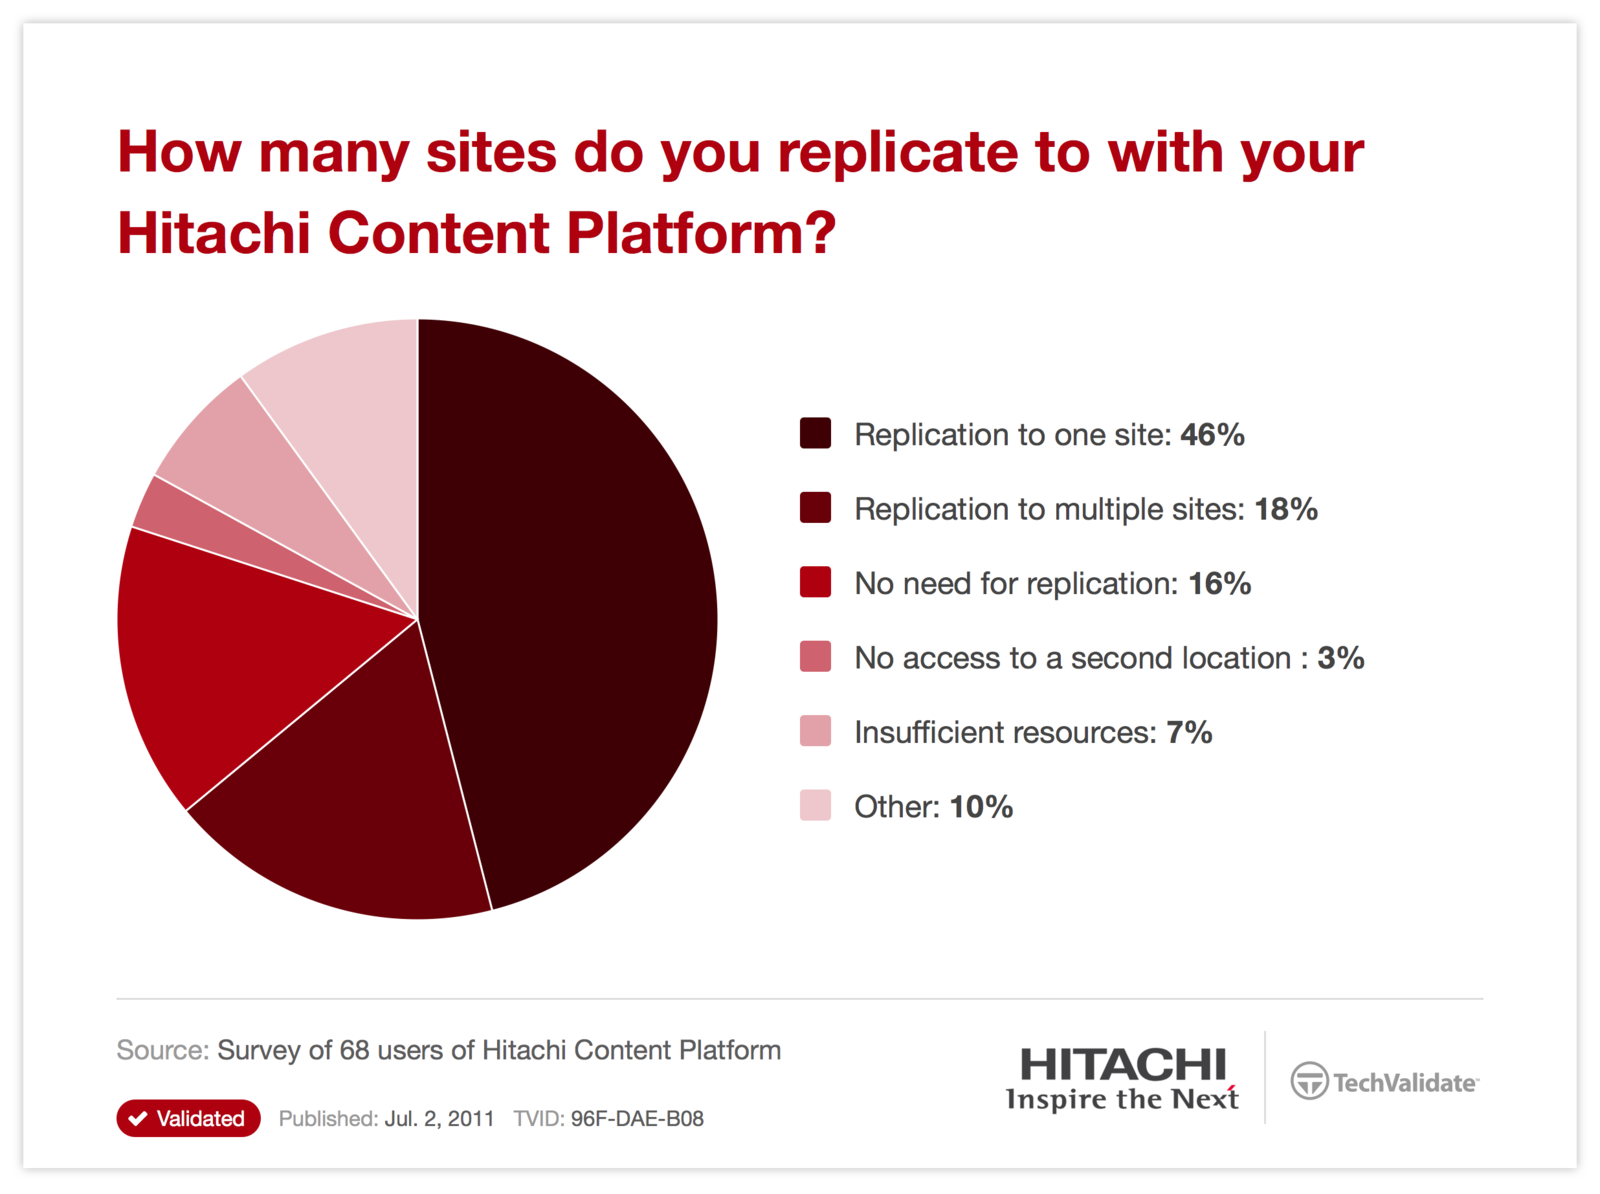 How many sites do you replicate to with your Hitachi Content Platform?